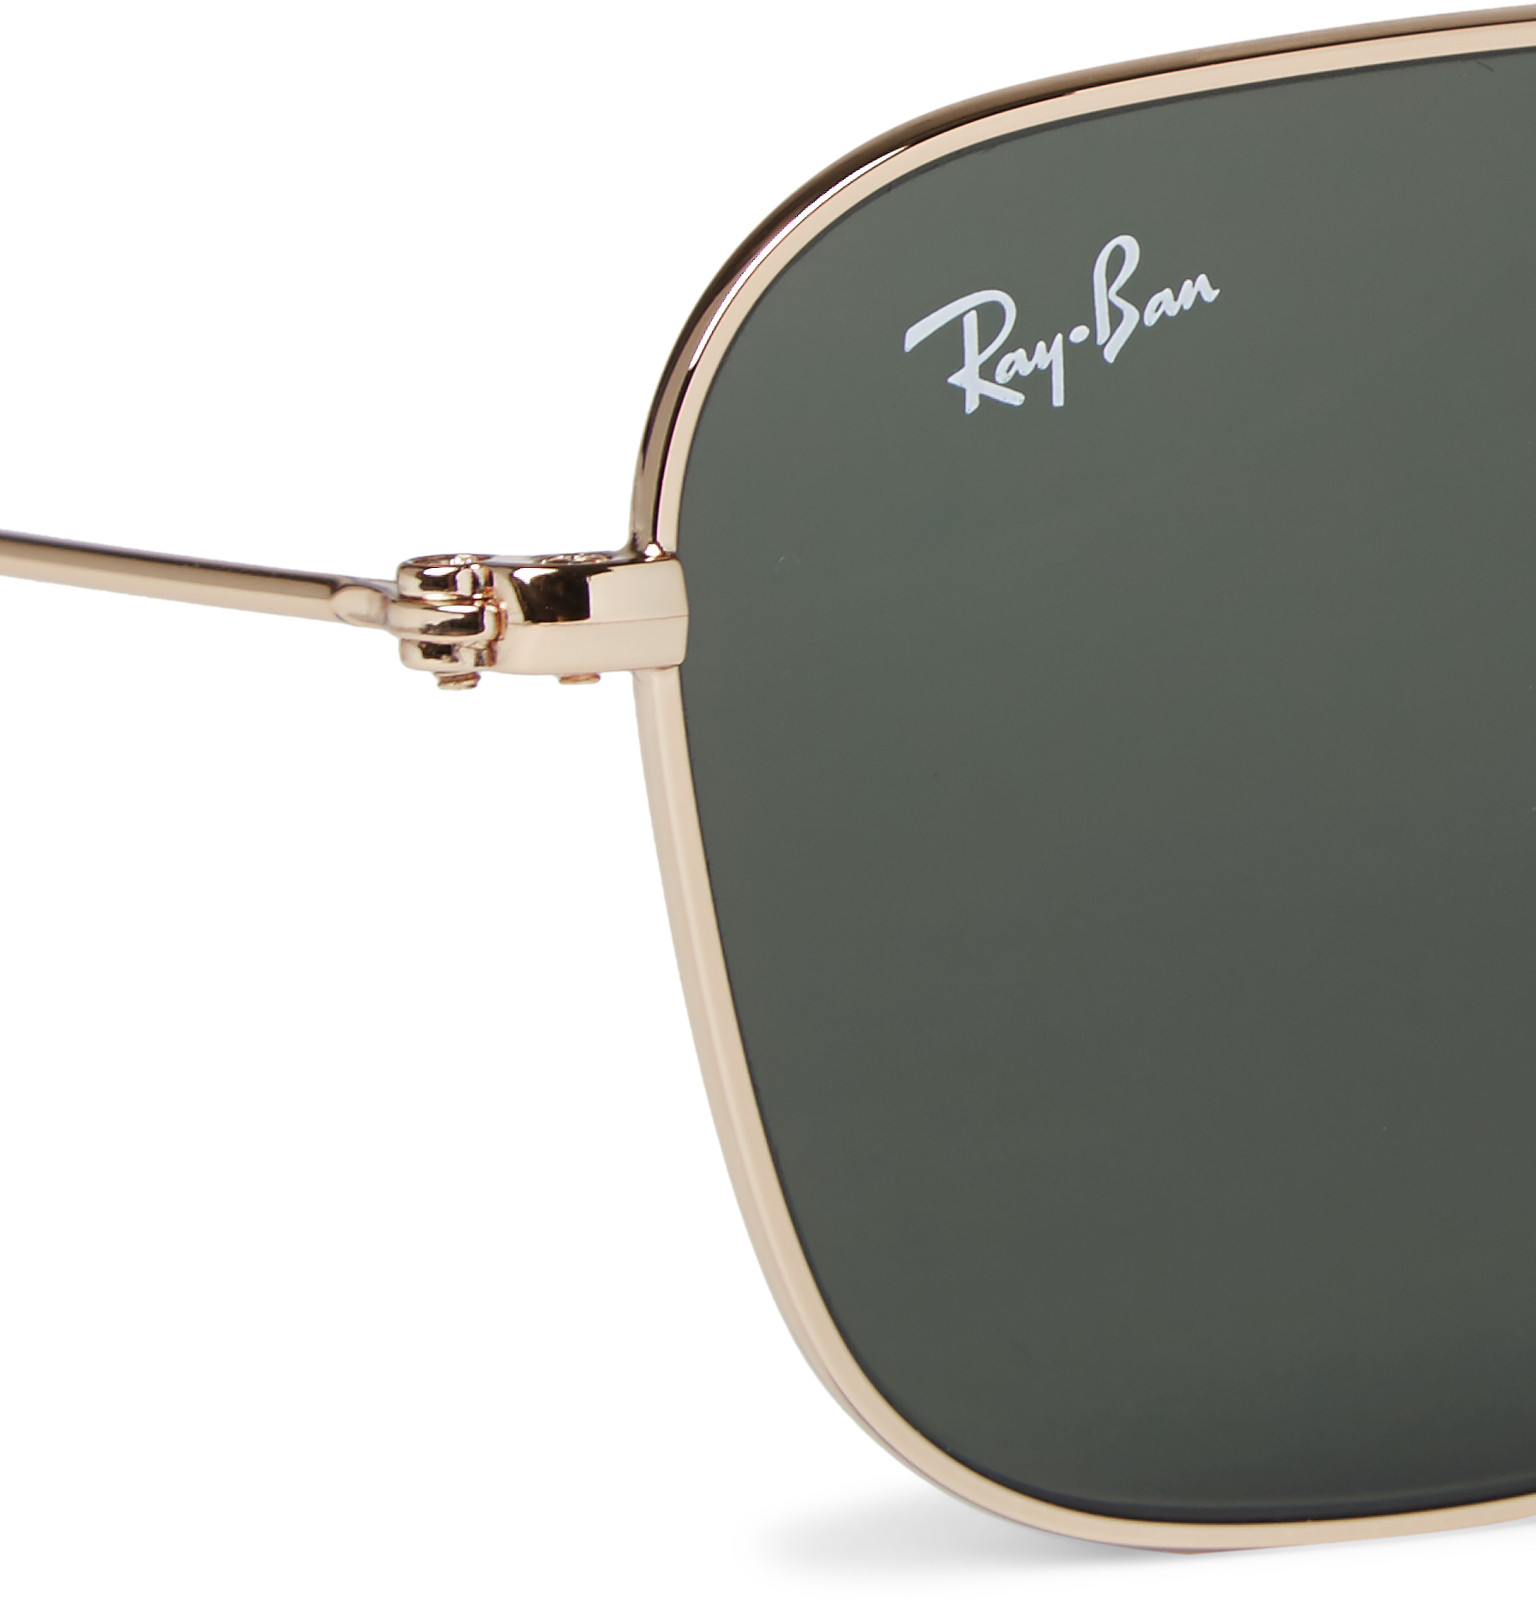 e858329664 Lyst - Ray-ban Square-frame Gold-tone Sunglasses in Metallic for Men Ray-Ban  Unisex RB3543 Chromance Polarized Aviator Sunglasses